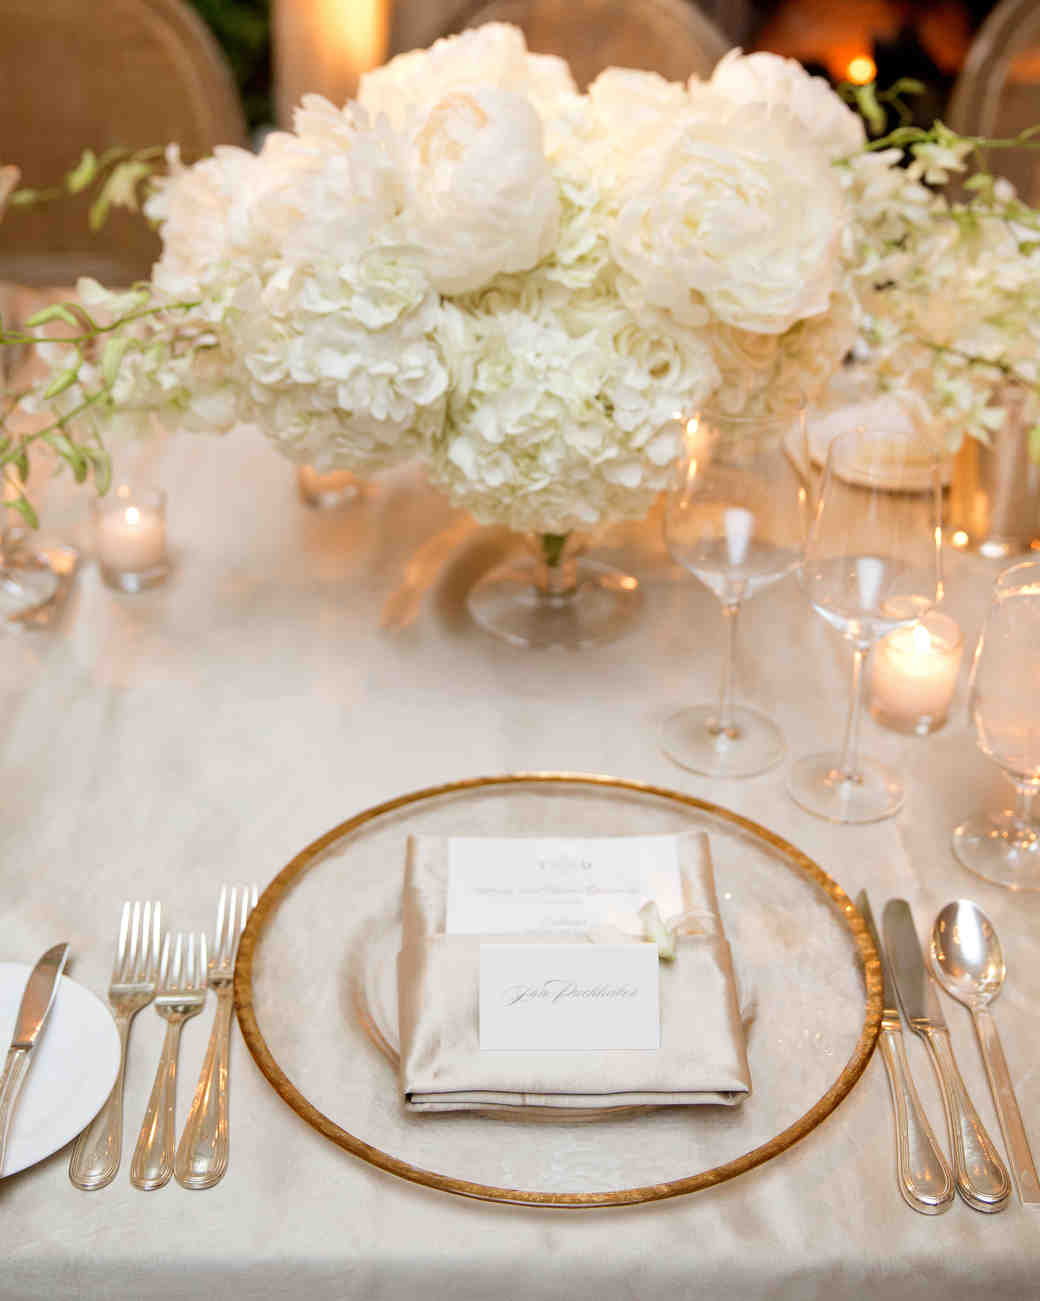 tiffany-david-wedding-placesetting-1263-s112676-1115.jpg